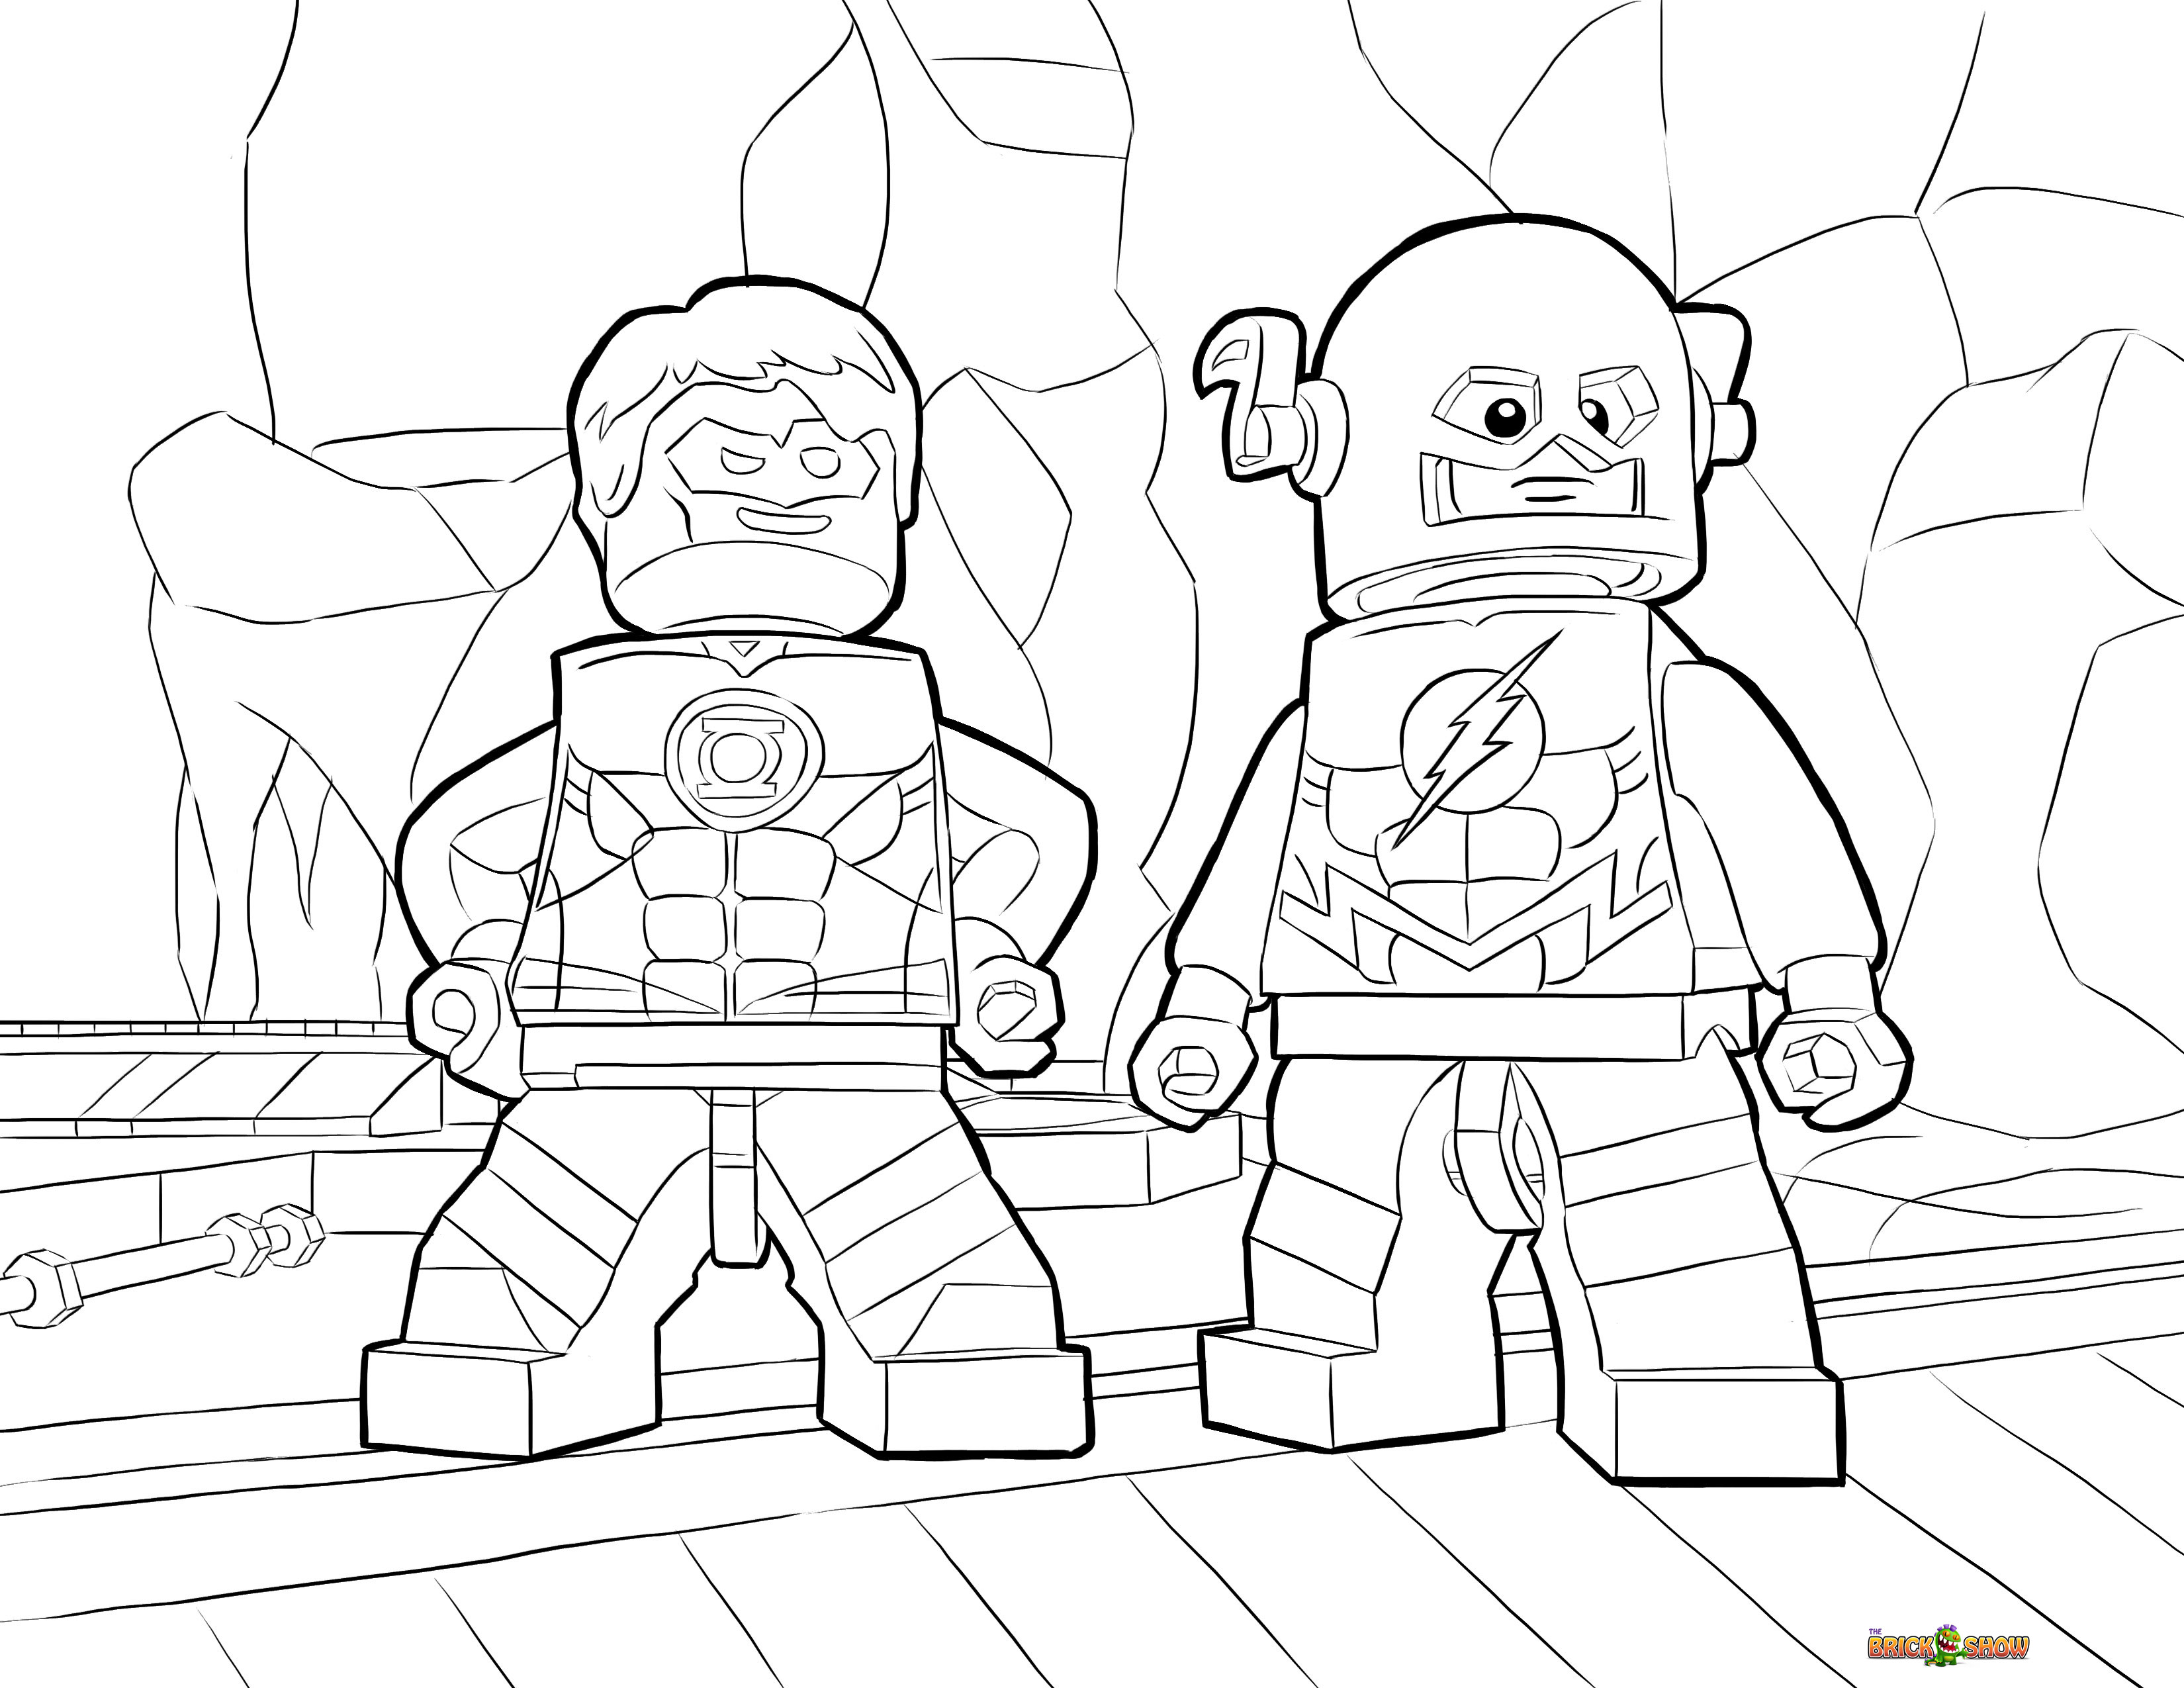 dc comics coloring pages dc comics flash coloring pages download and print for free pages coloring dc comics